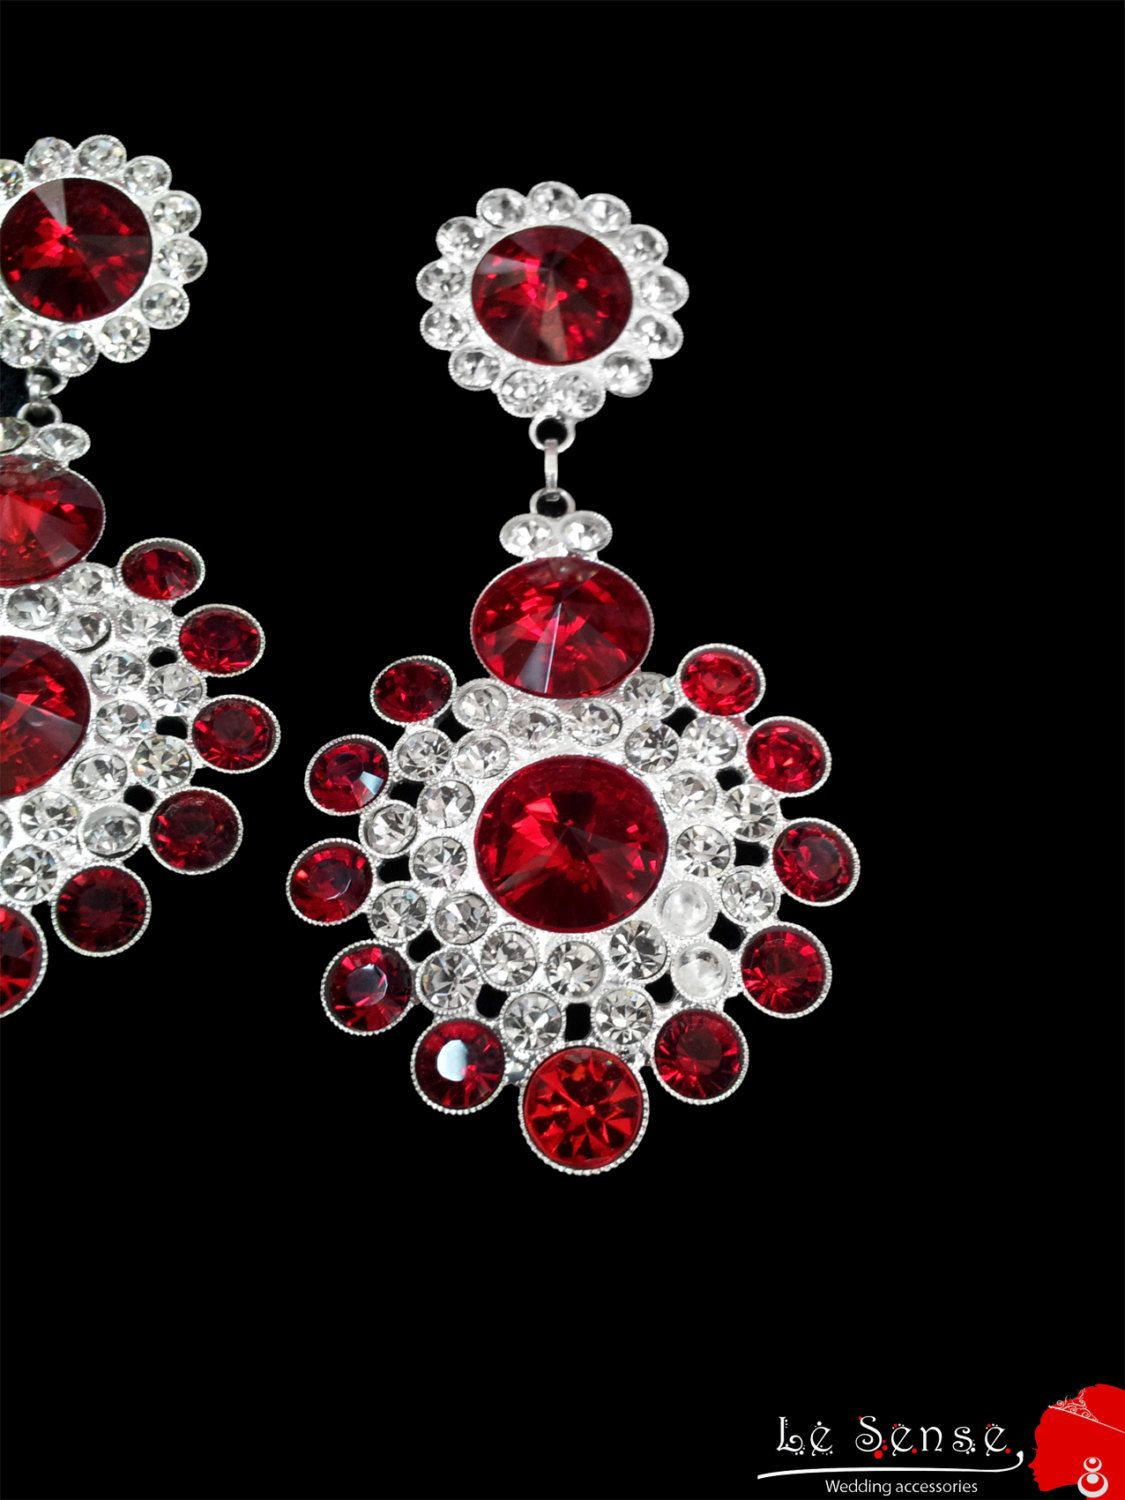 Wedding earring earring with clear white and red crystals earring wedding earring earring with clear white and red crystals earring for a wedding chandelier earrings wedding inlaid with colored crystals arubaitofo Choice Image